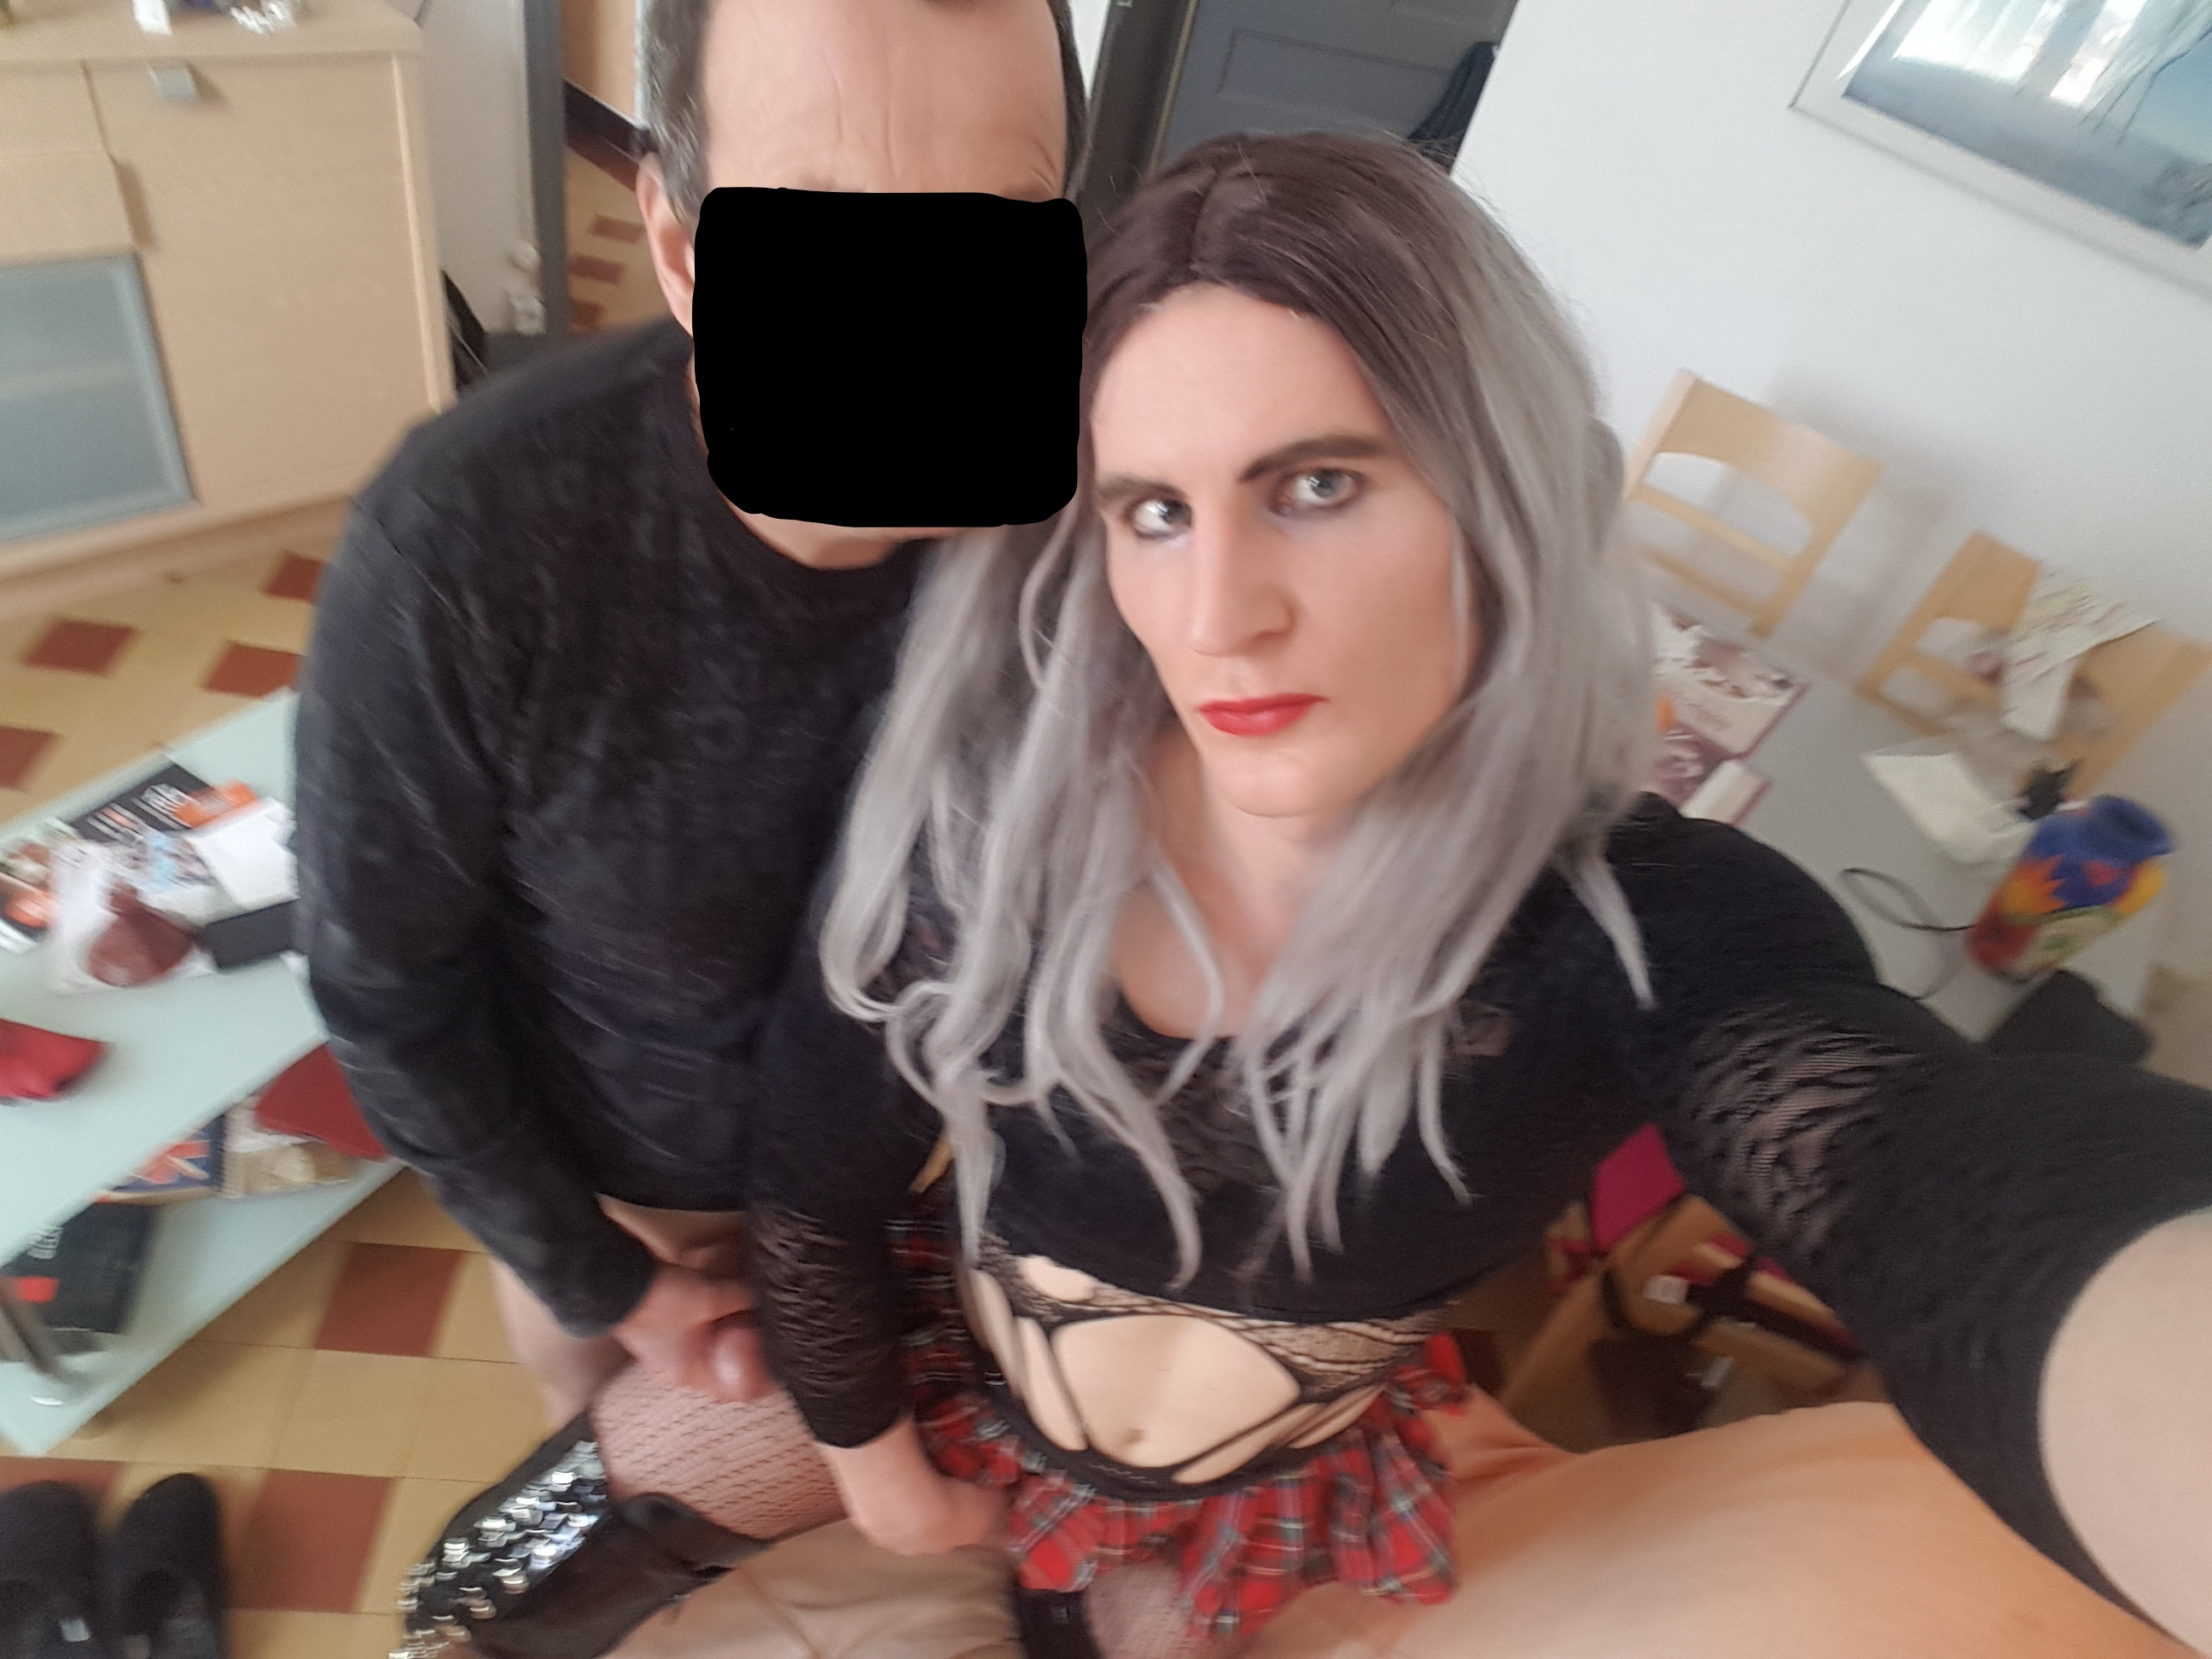 Ject Sissy Faggot Whore Exposed (7/19)